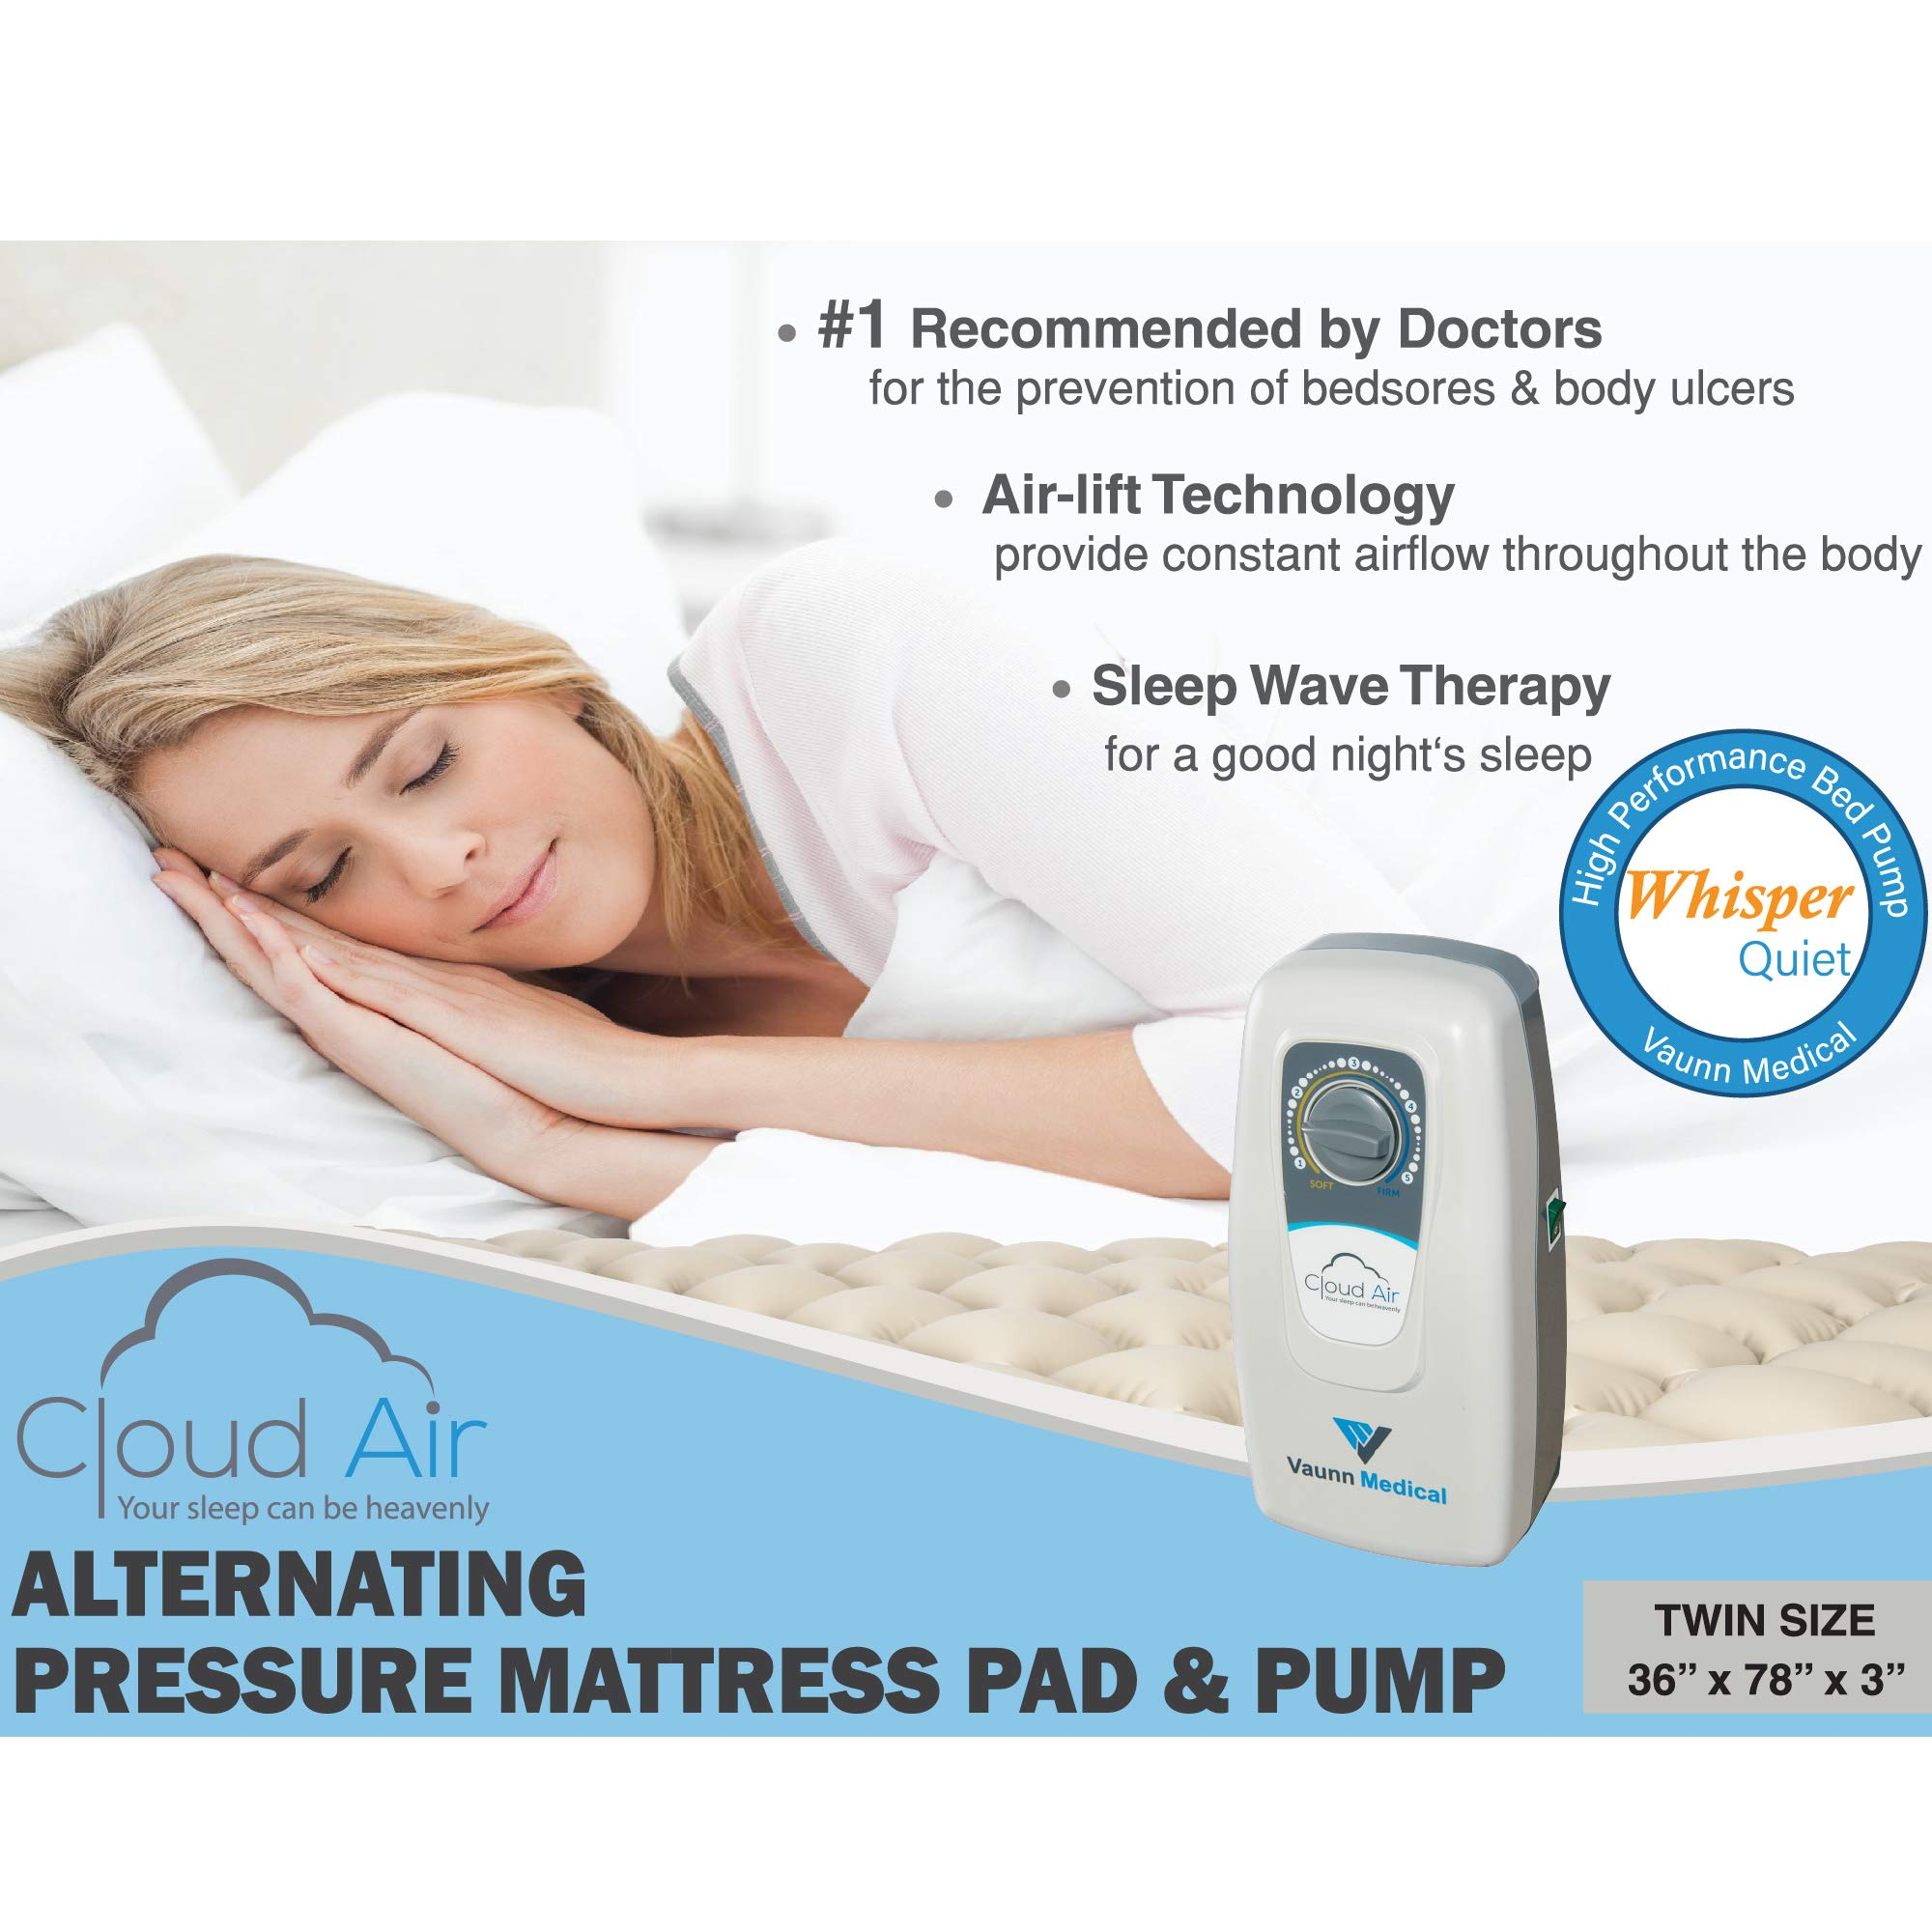 Amazon.com: Vaunn Medical Cloud Air Whisper Quiet Alternating Air Pressure Mattress Topper with Pump (2018 Upgraded Model) Twin Size 36